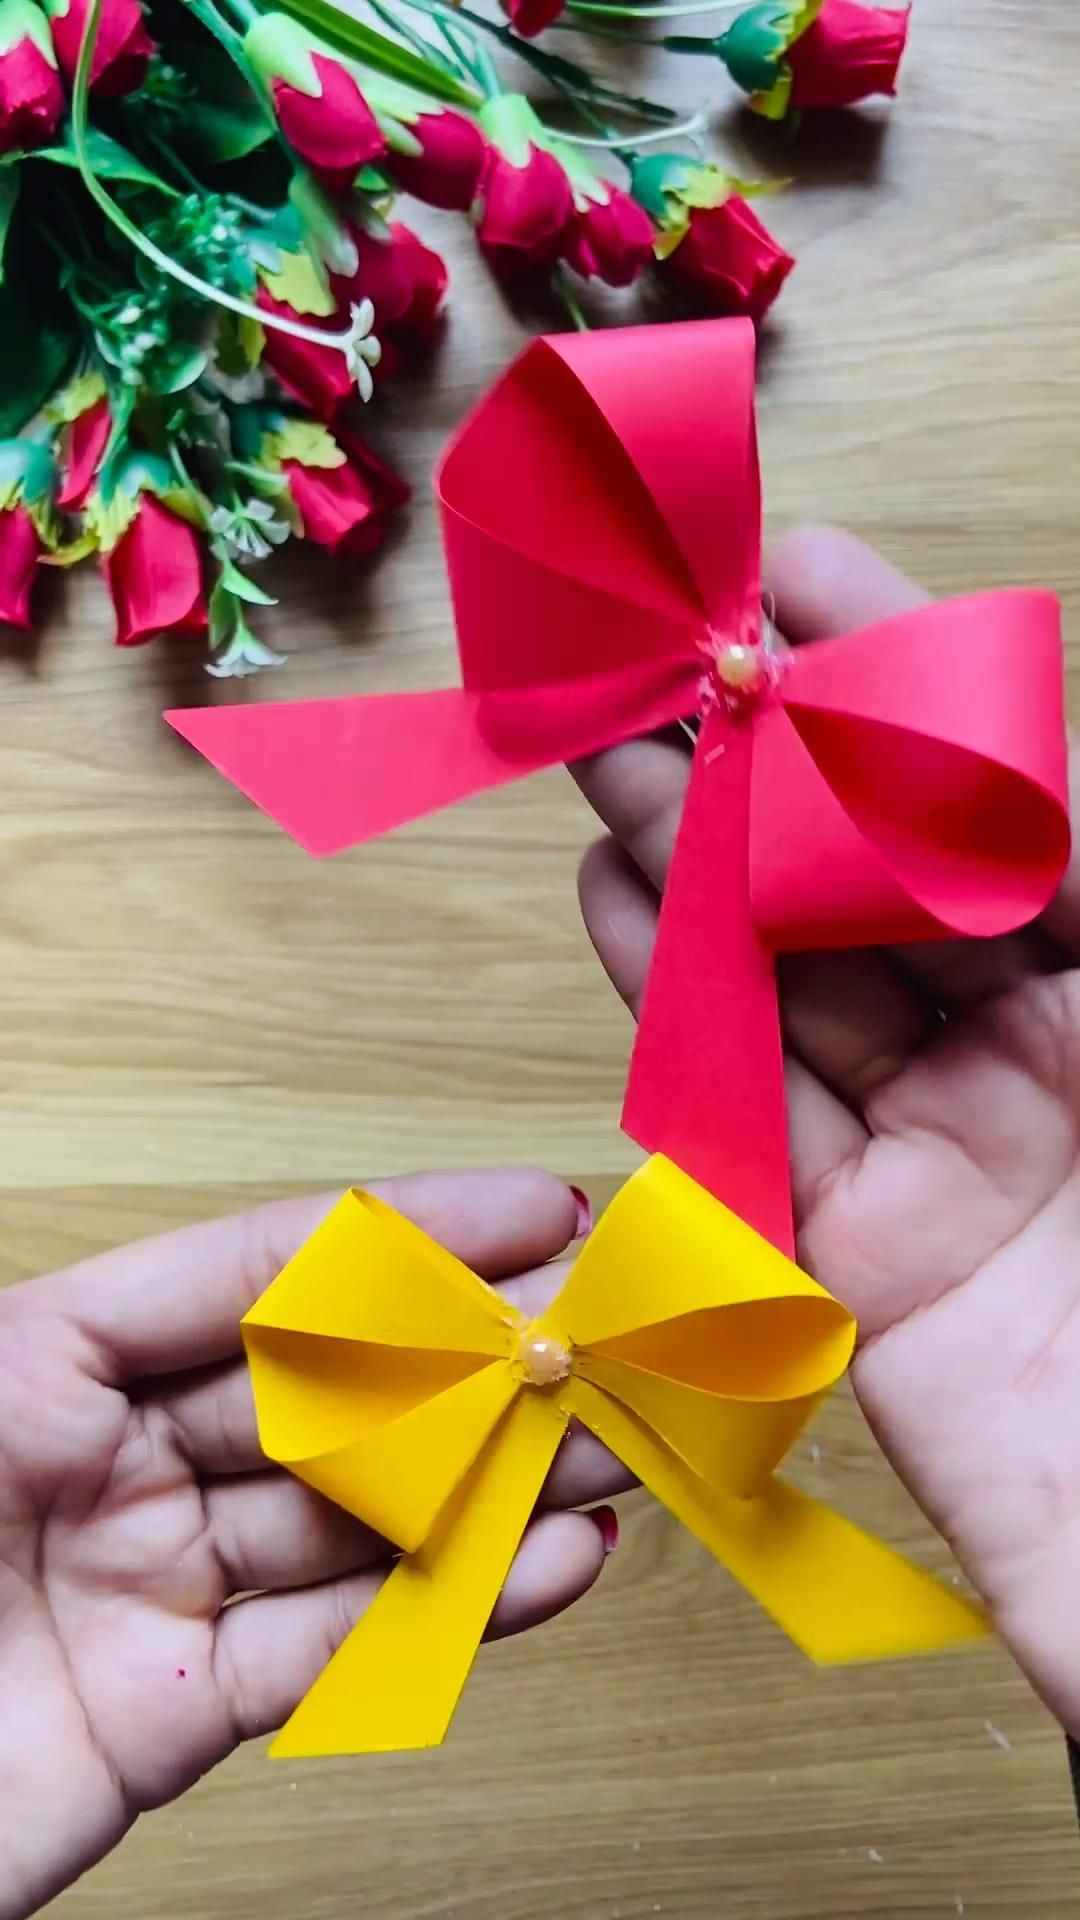 Paper Bow Tie Short Video Youtube Video In 2020 Paper Bow Paper Bows Diy Diy Christmas Paper